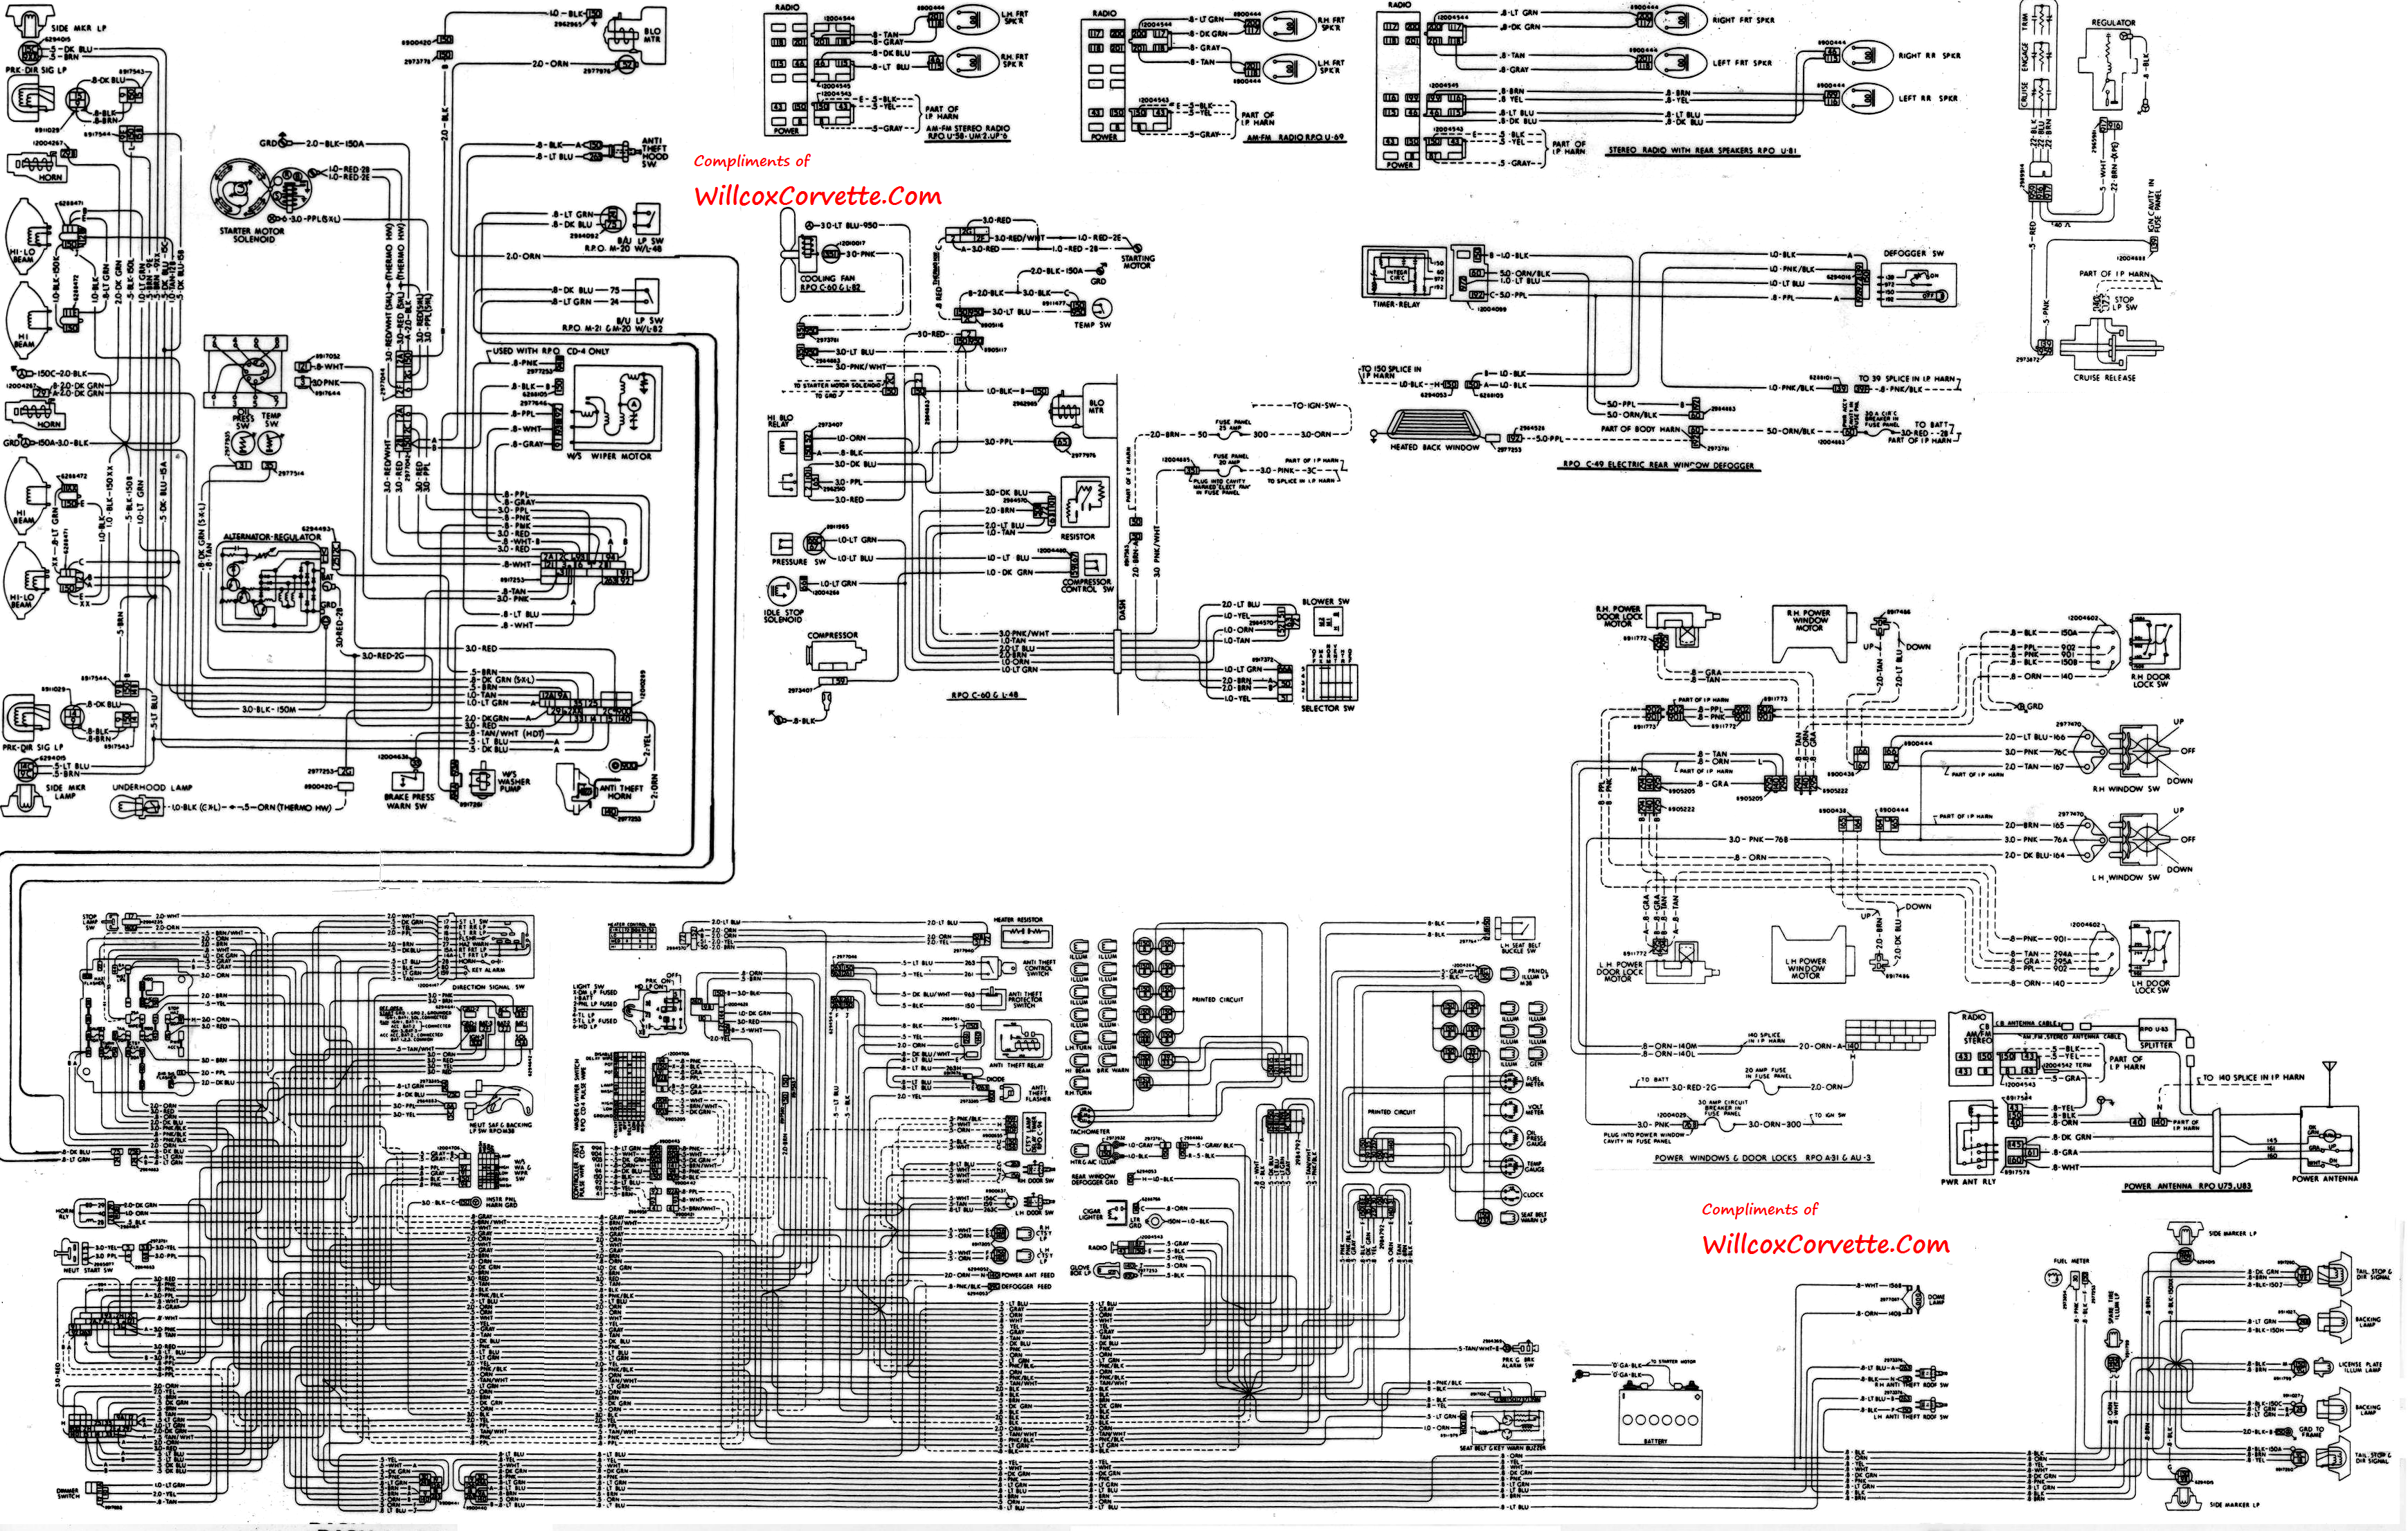 1979 wire diagram corvette wiring diagram evo x wiring diagram \u2022 wiring diagram  at readyjetset.co